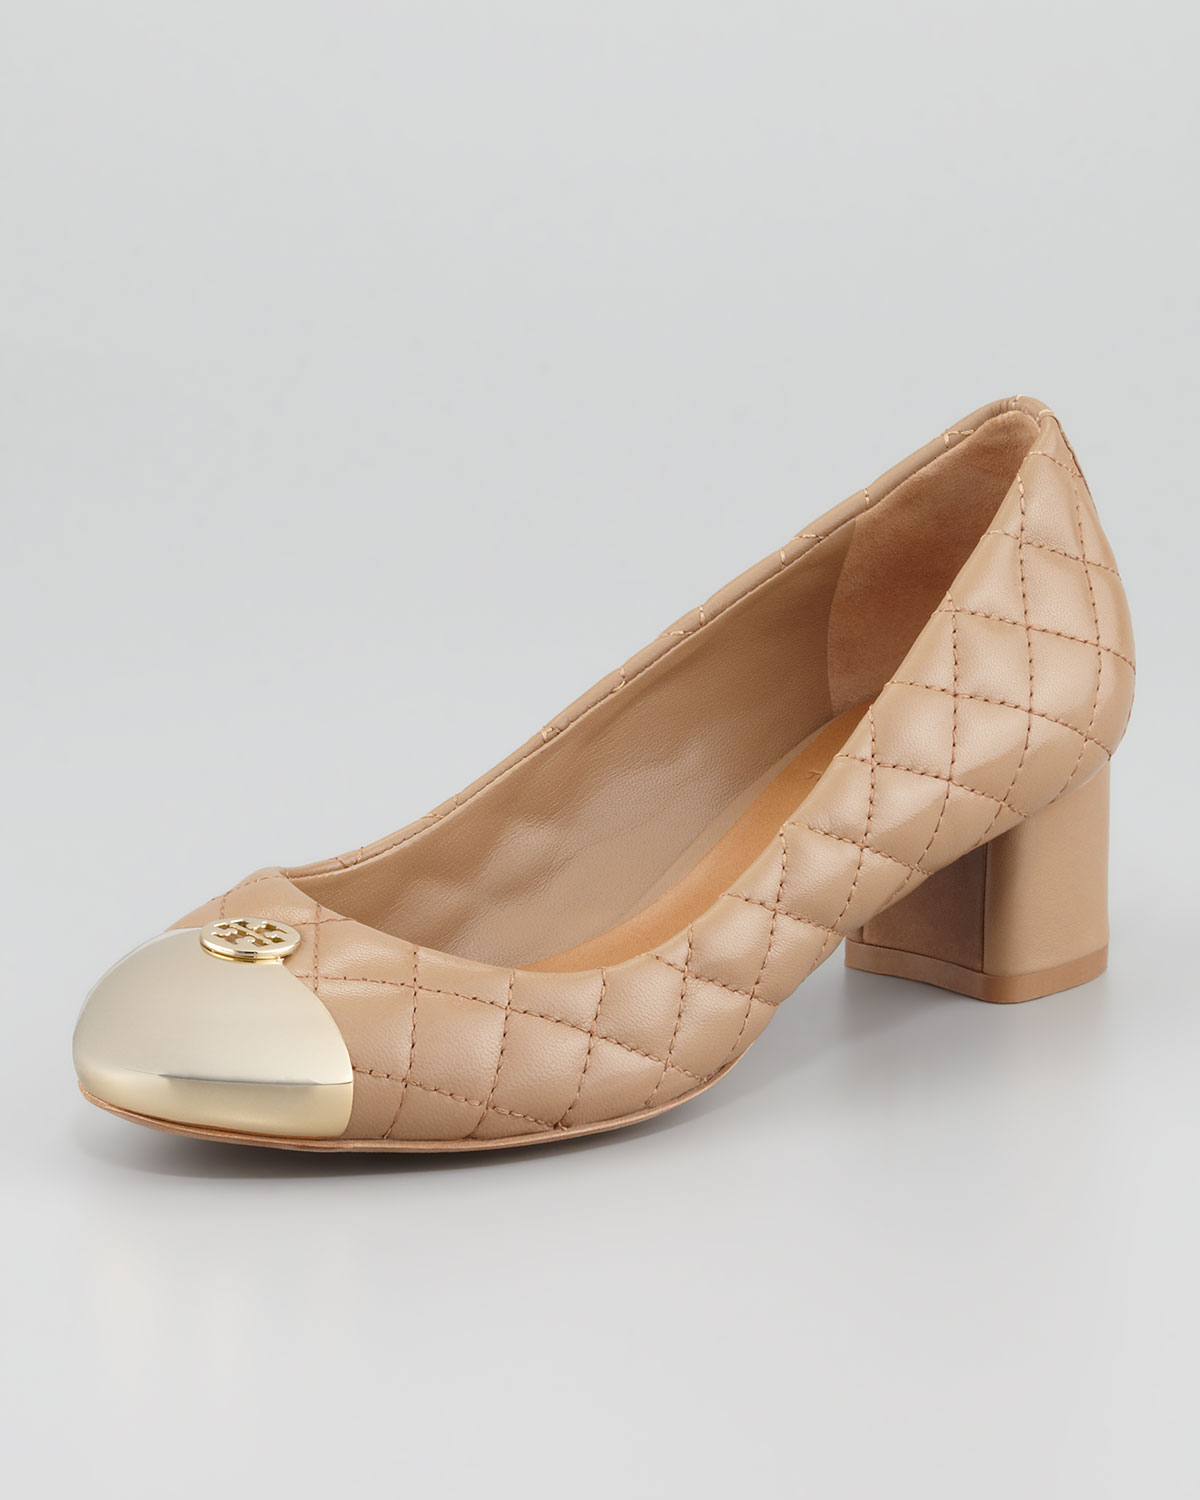 a3c5f5a7a20f Lyst - Tory Burch Kaitlin Quilted Captoe Pump Beige in Natural